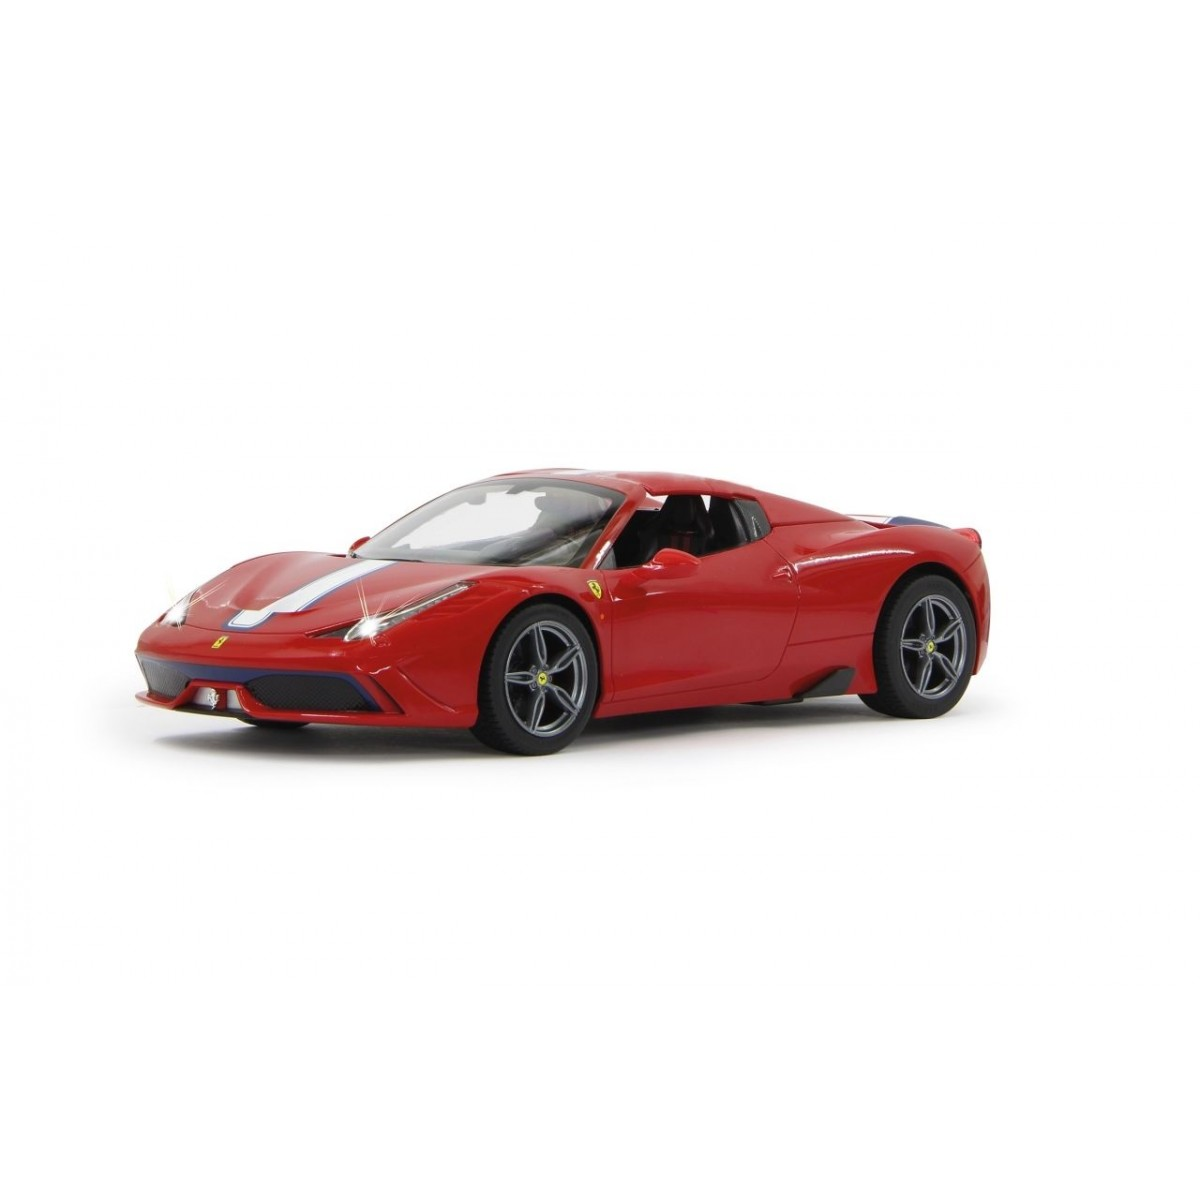 ferngesteuertes auto ferrari 458. Black Bedroom Furniture Sets. Home Design Ideas